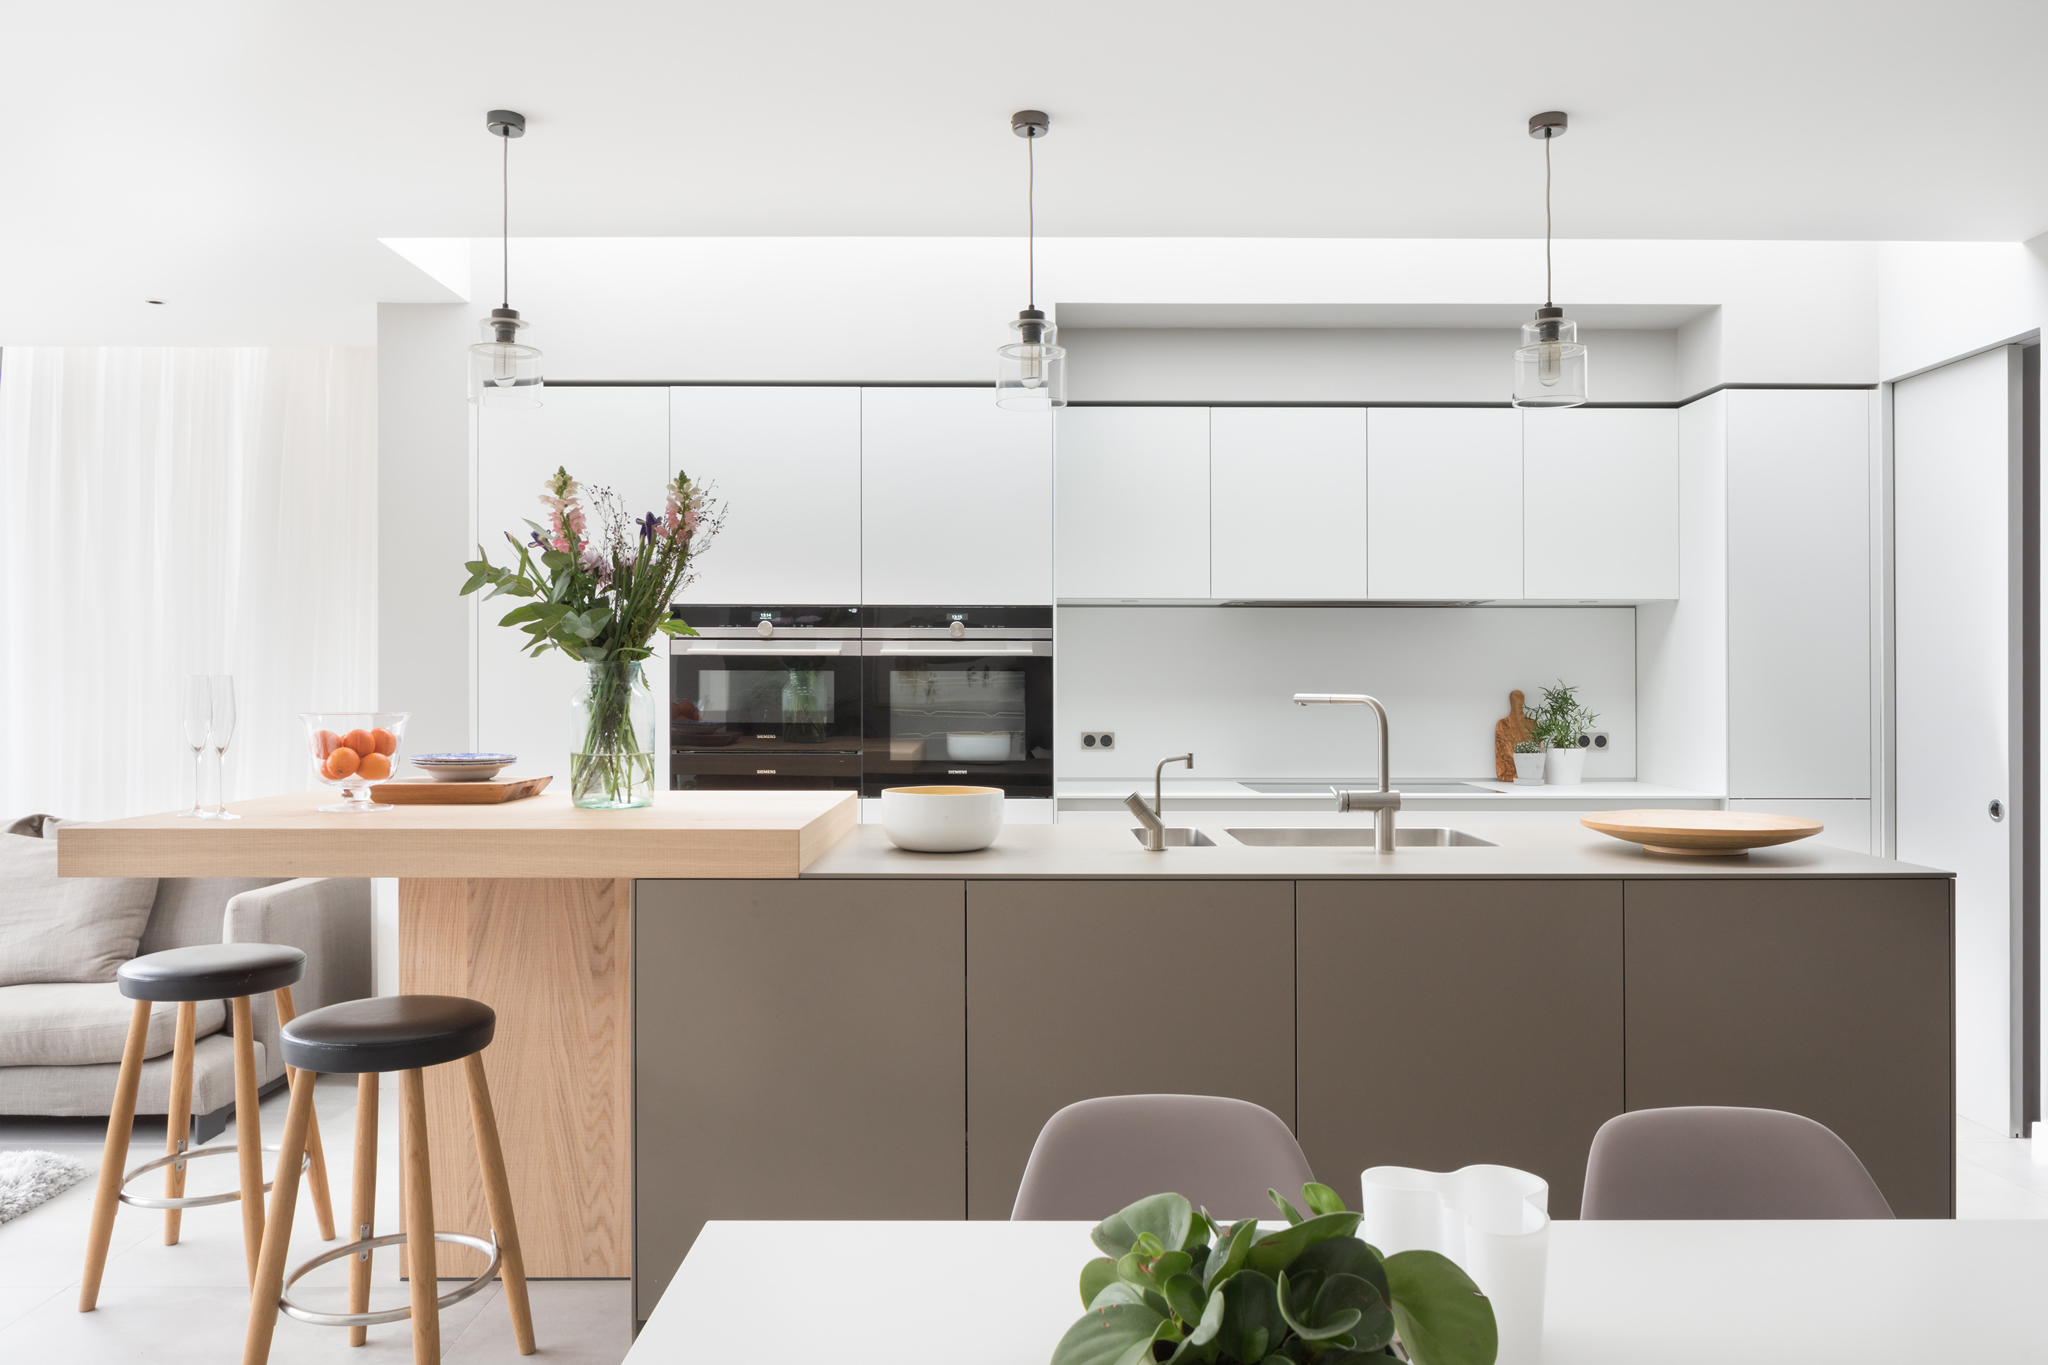 1. Alex Cotton Interiors Putney, Bulthaup Kitchen